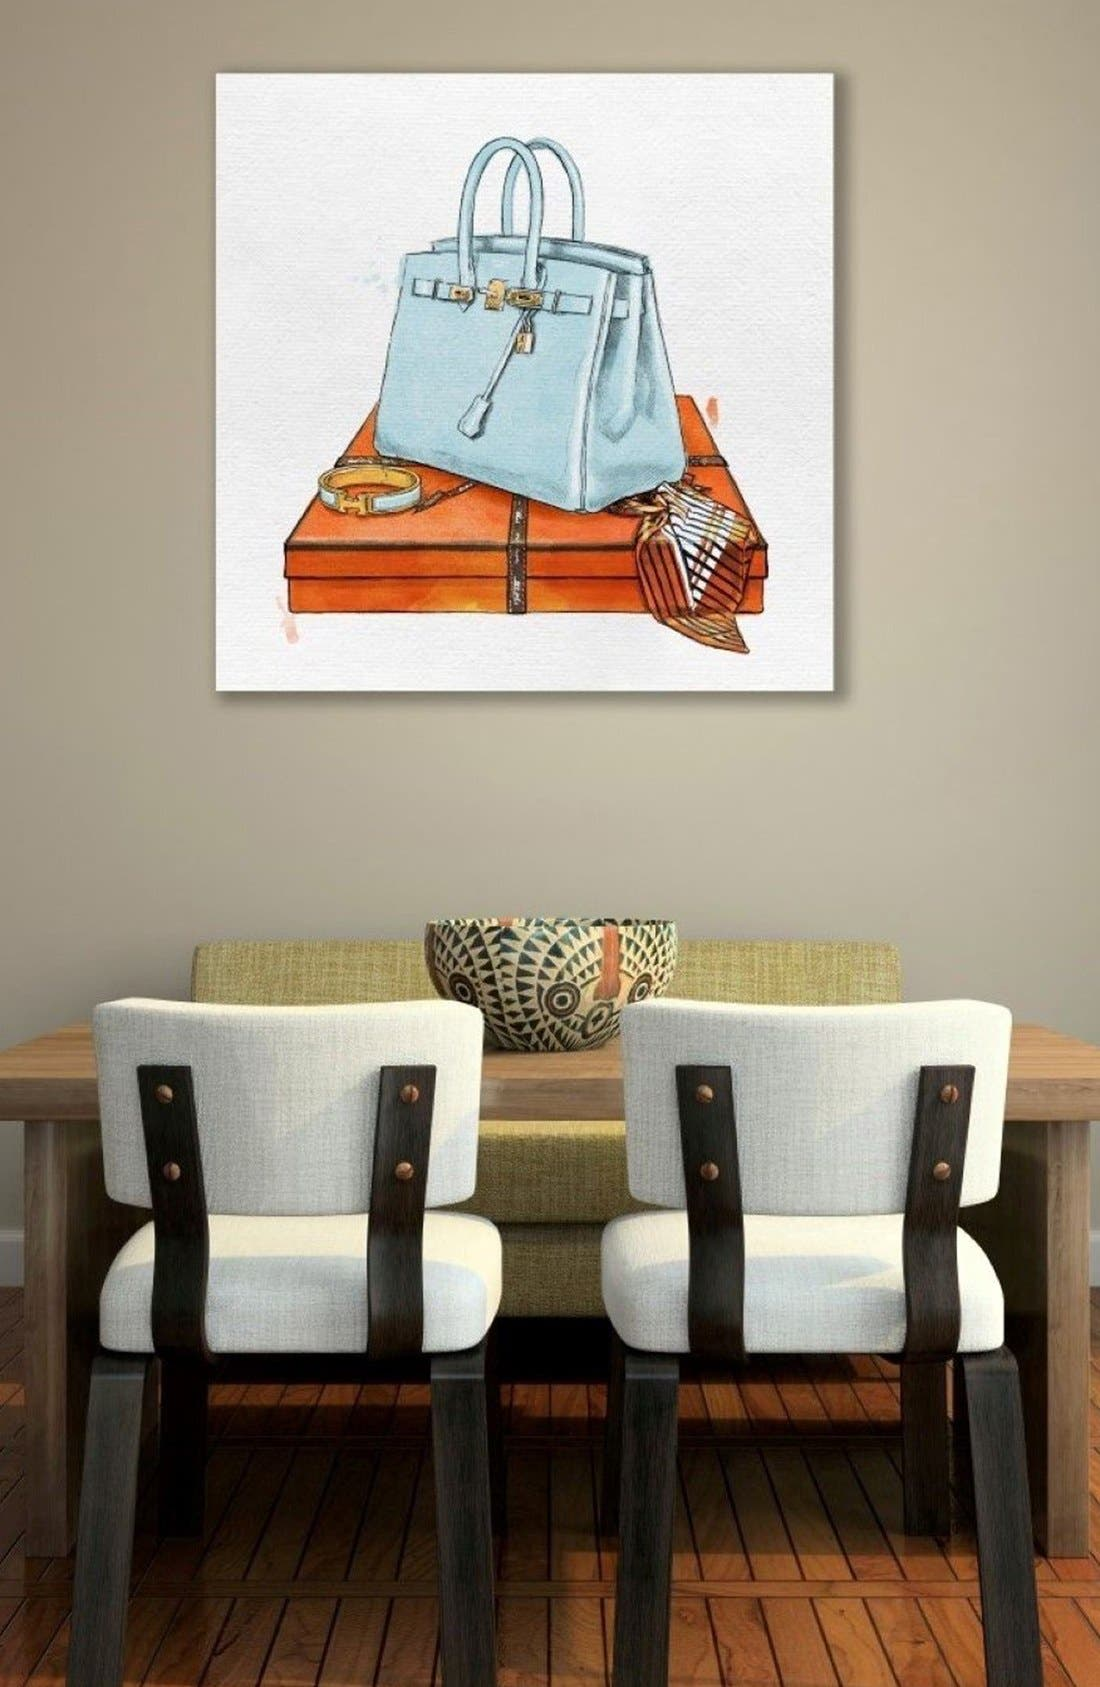 My Bag Collection I Canvas Print,                             Alternate thumbnail 4, color,                             400